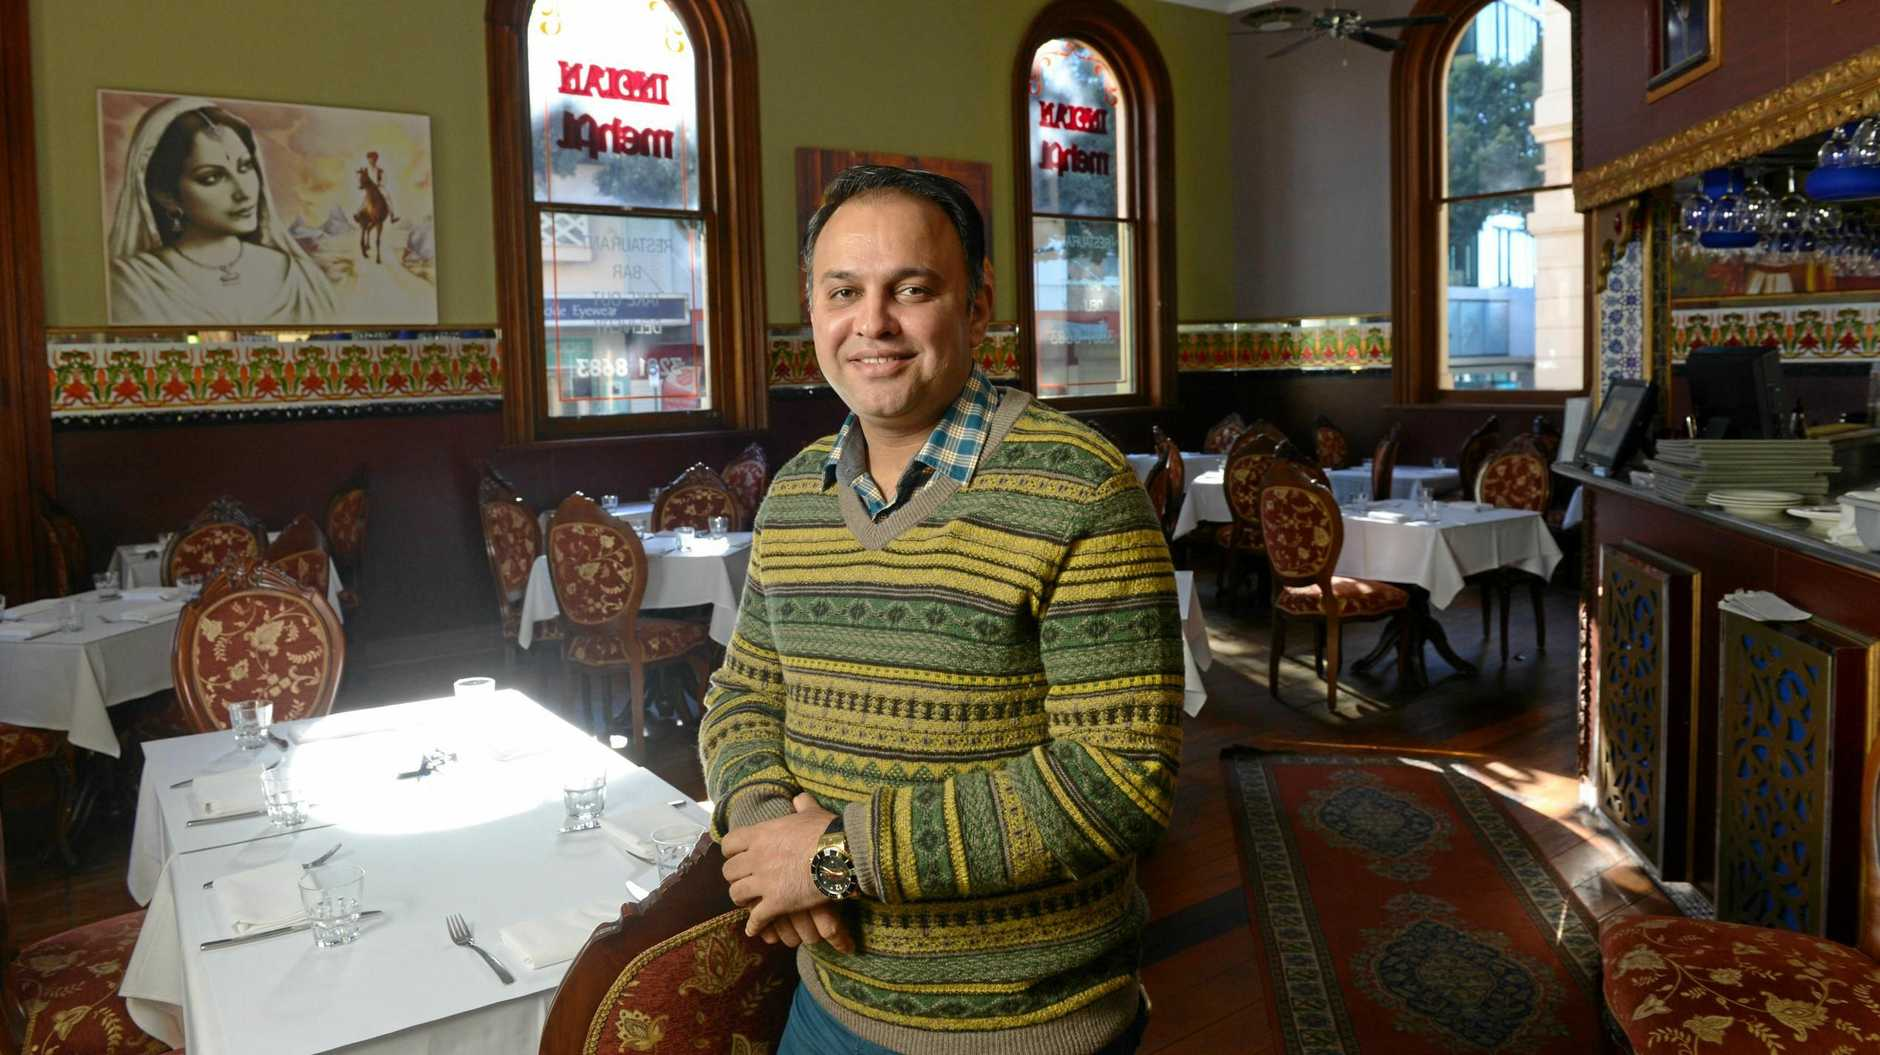 Ipswich businessman Rajesh Sharma will open his Indian Mehfil restaurant for free meals on Christmas Day.